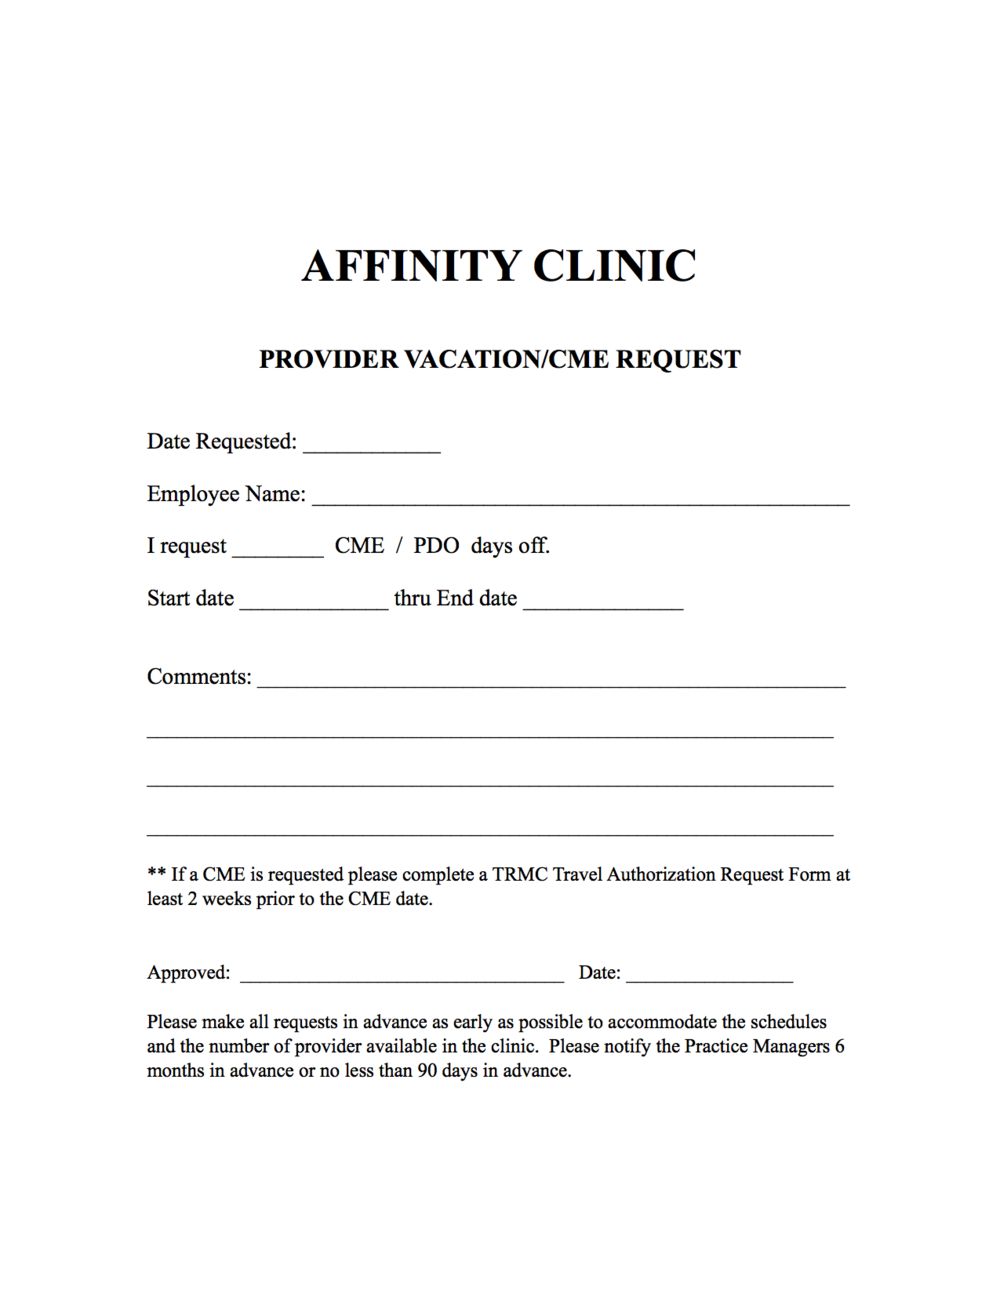 Affinity Clinic PDO